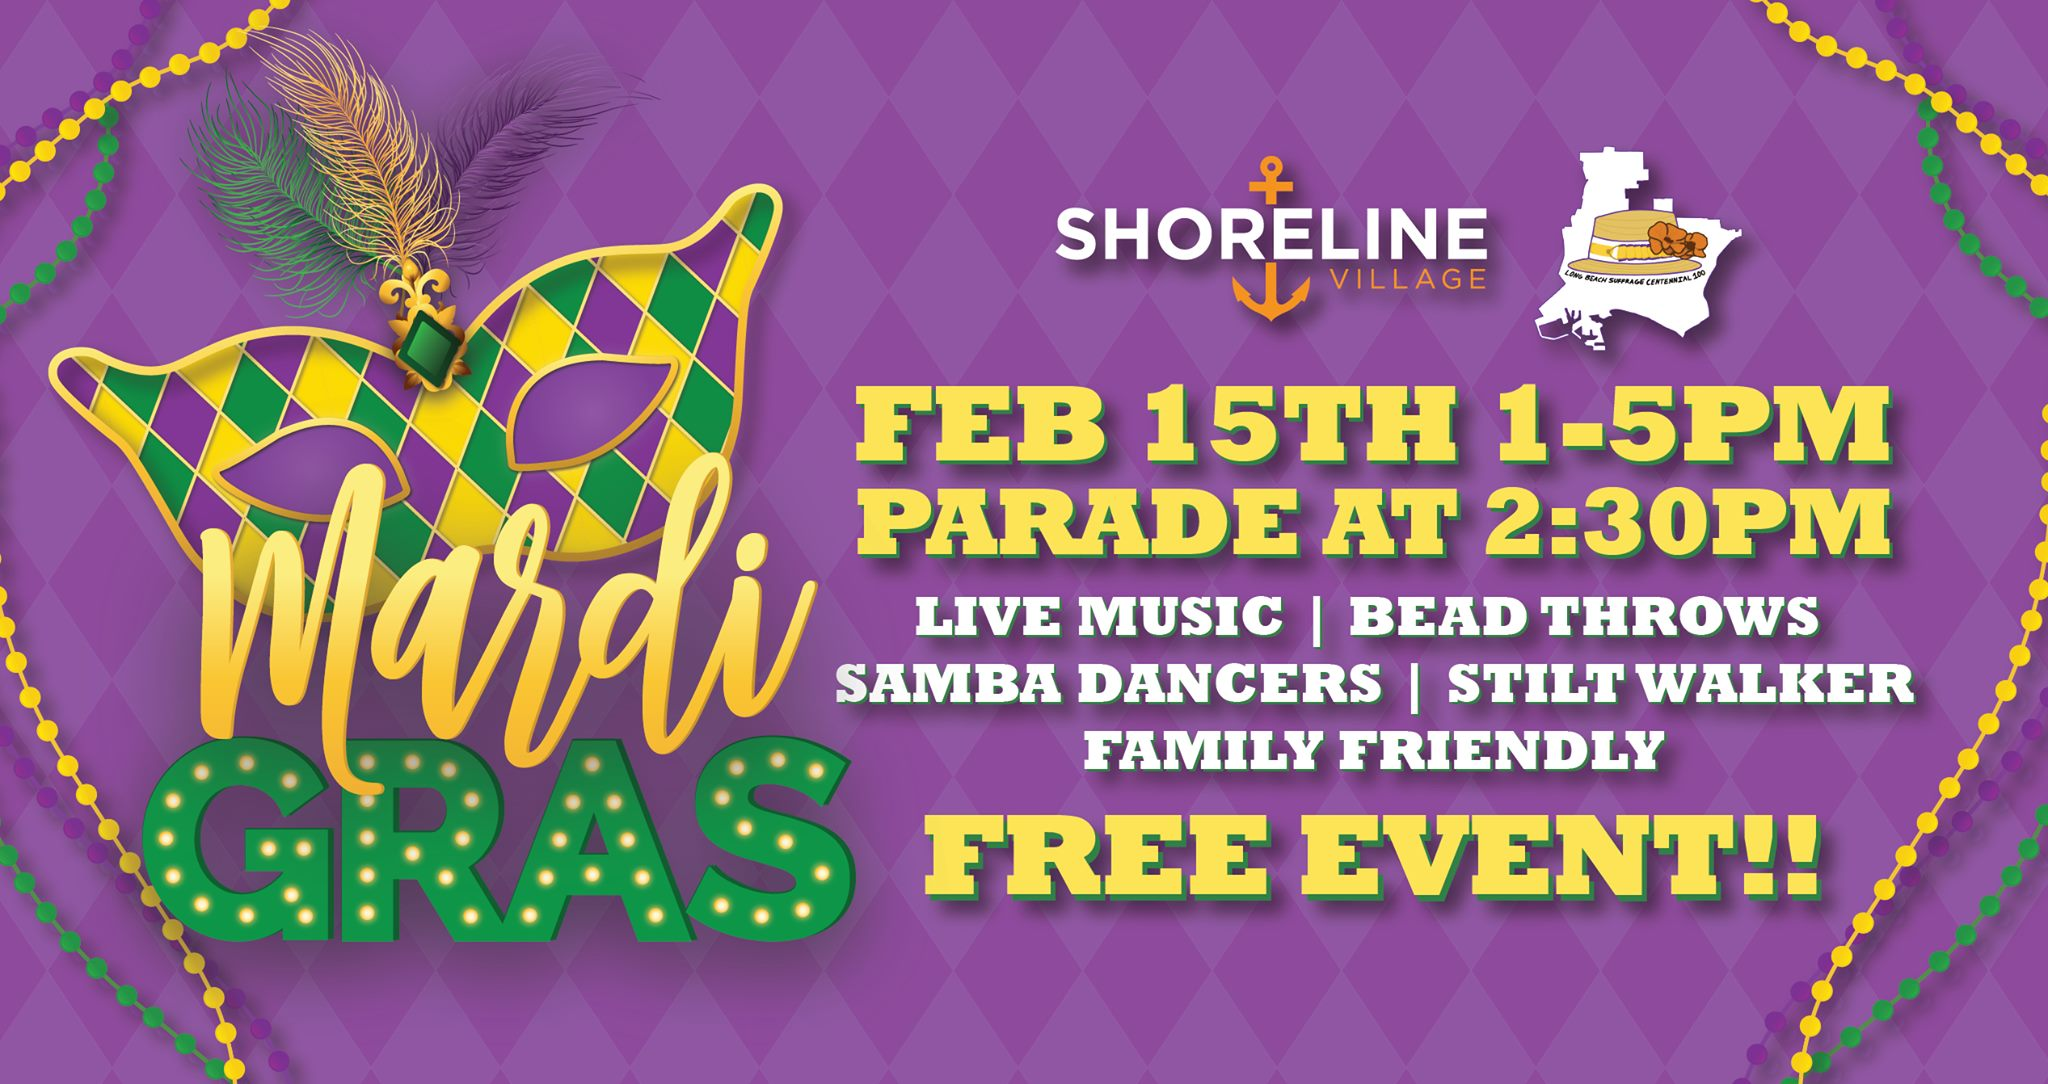 Long Beach Mardi Gras at Shoreline Village